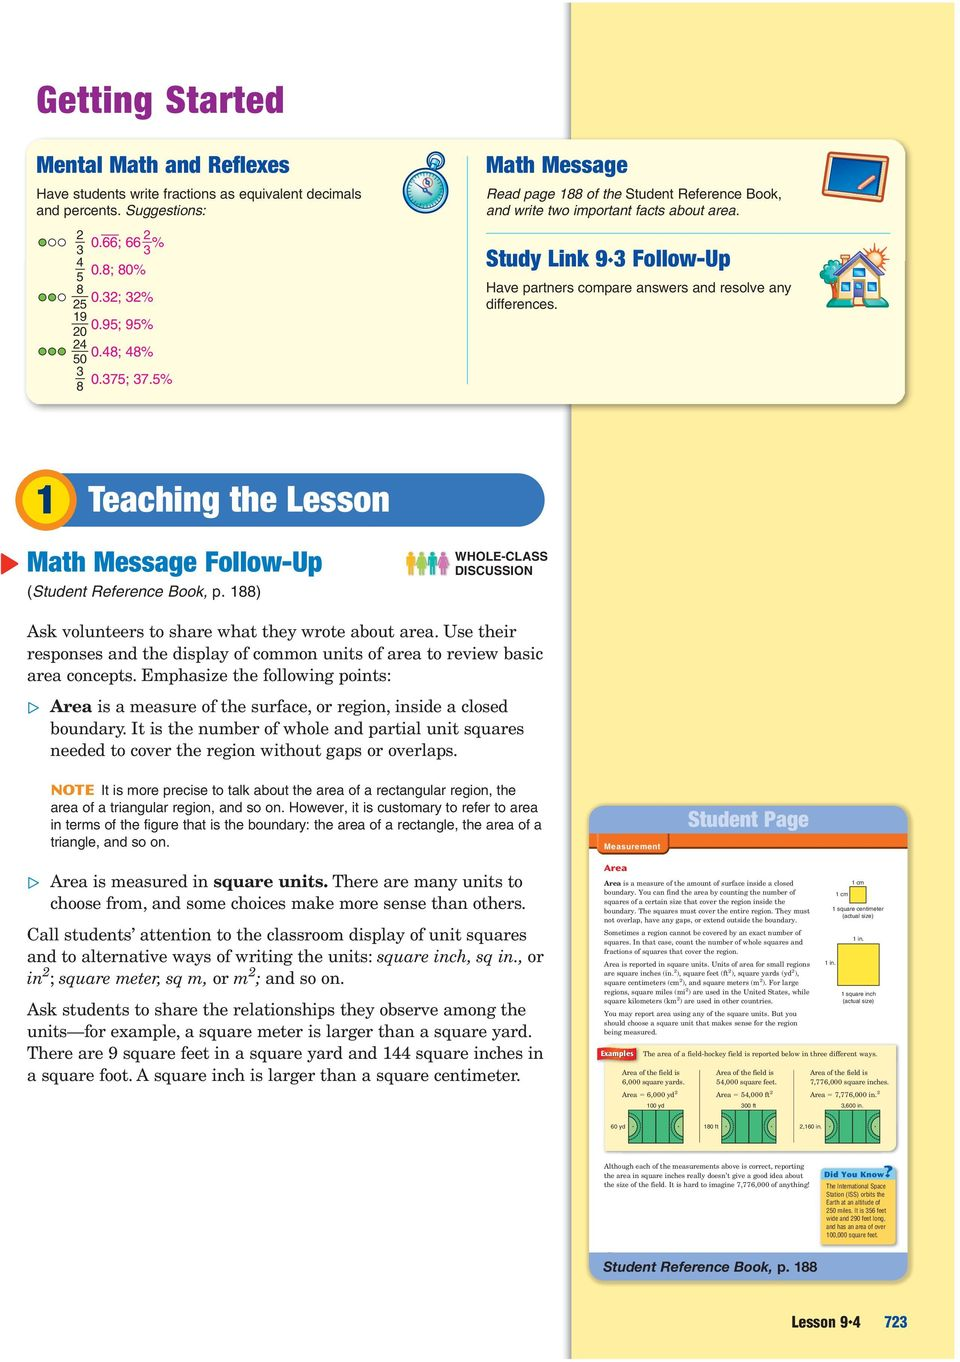 Study Link 9 3 Follow-Up Have partners compare answers and resolve any differences. 1 Teaching the Lesson Math Message Follow-Up (Student Reference Book, p.